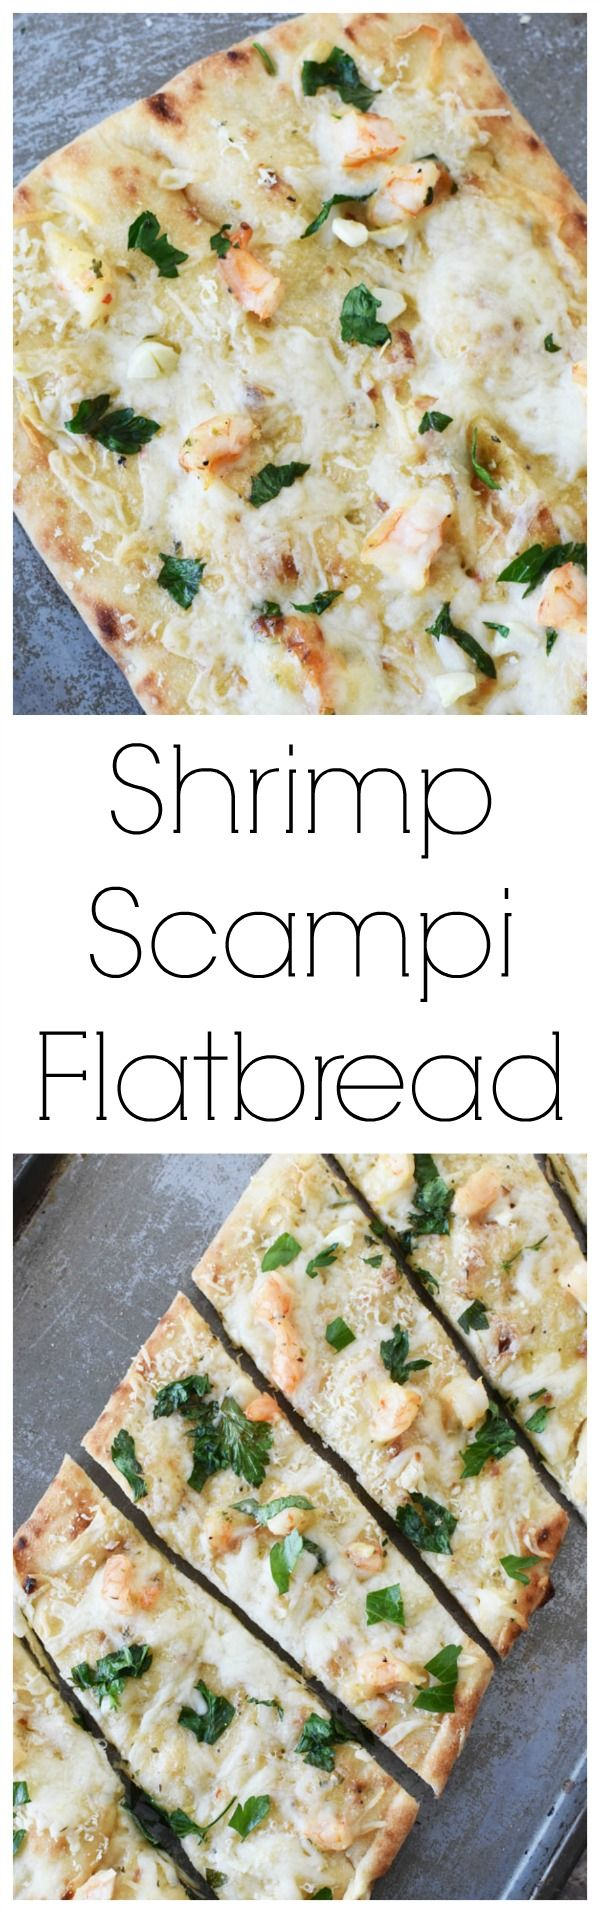 Shrimp Scampi Flatbread  A delicious and quick recipe that requires minimal effort, but produces upscale results. Perfect for the Lenten season or warmer weather.  via @savvysavingcoup AD @Gorton